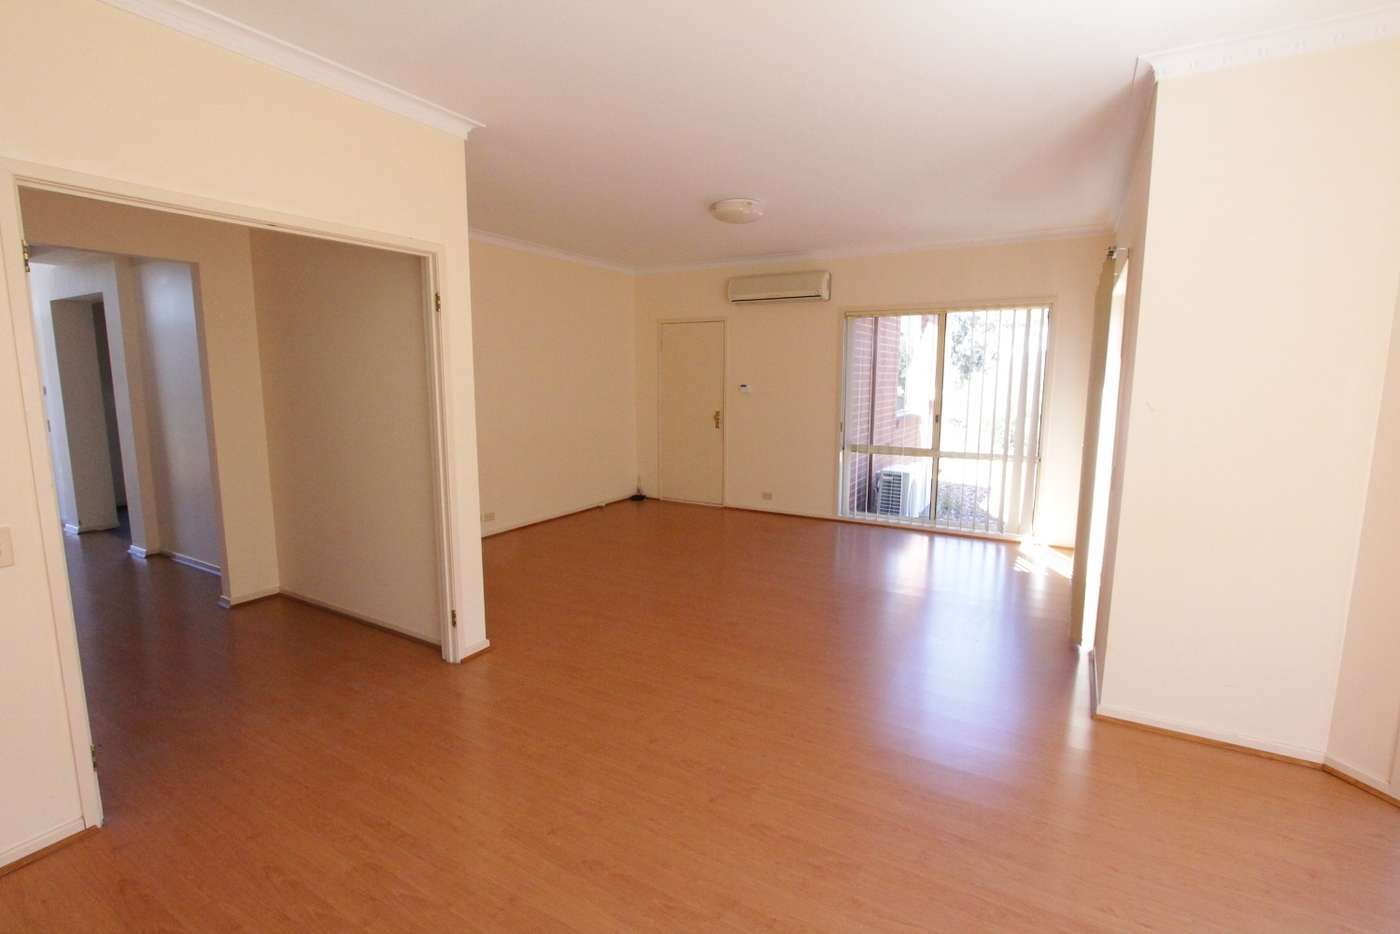 Sixth view of Homely house listing, 12 Ironbark Court, Kennington VIC 3550